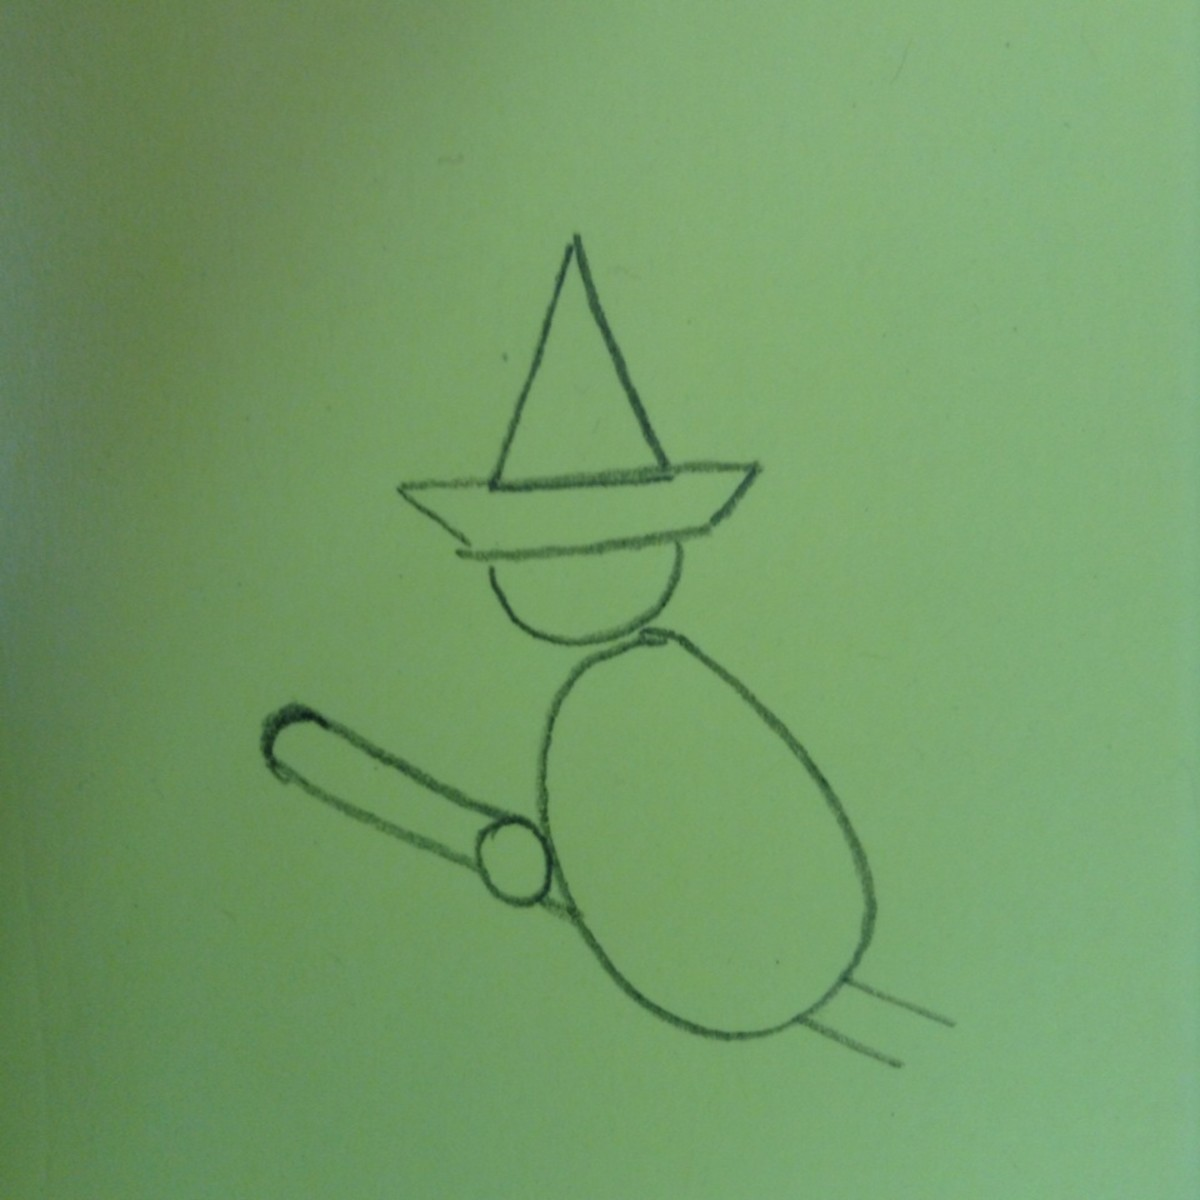 Start to draw her broom by drawing two diagonal lines past her body (you can draw them through her body and erase the lines later if that's easier).  Attach the two lines with a curve at the top.